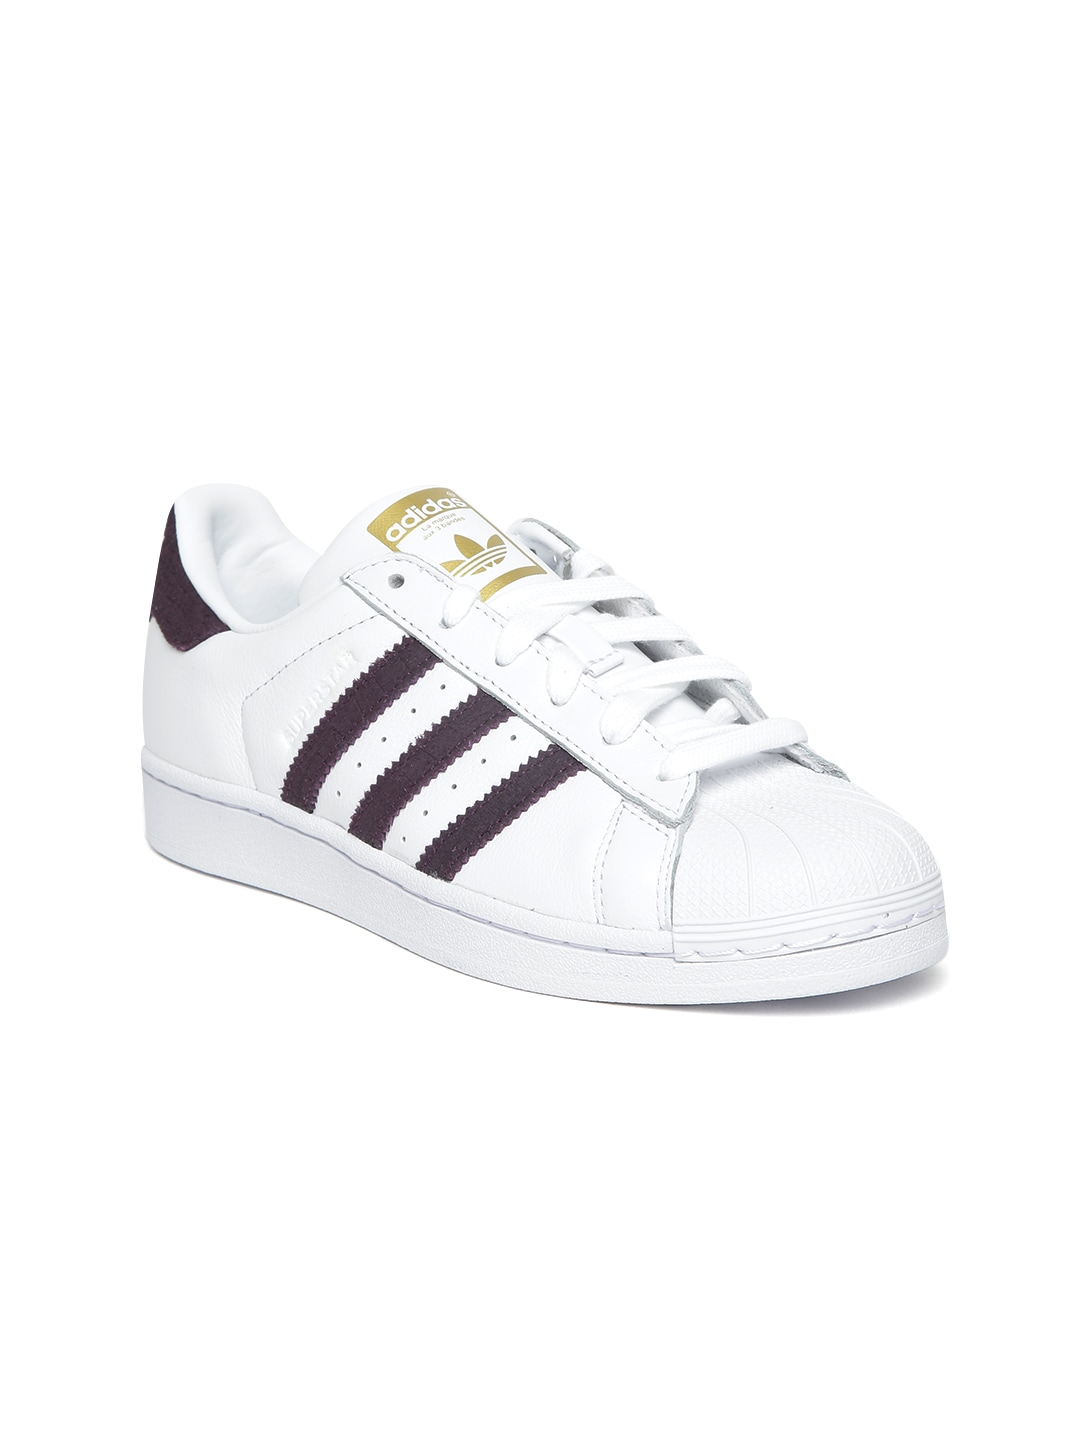 buy online 0aba0 fa4e8 Adidas Originals Casual Shoes - Buy Adidas Originals Casual Shoes online in  India